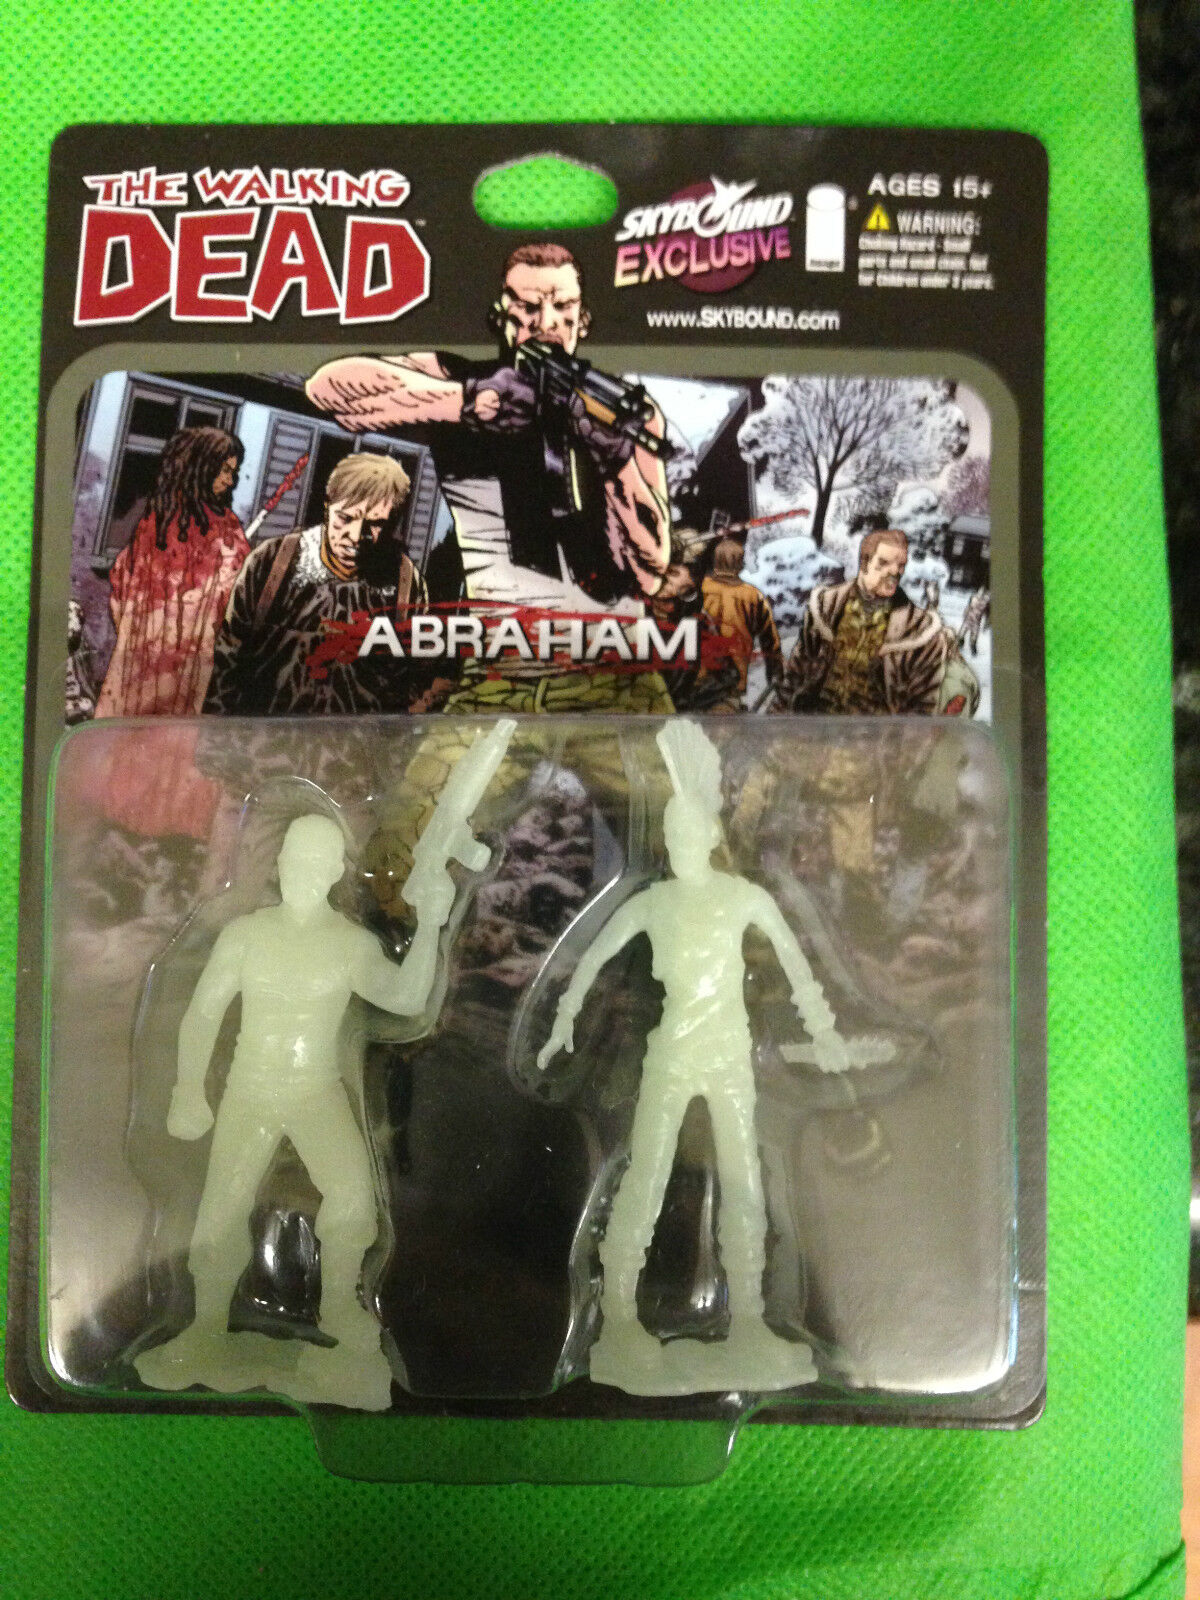 SDCC 2014 THE THE THE WALKING DEAD SKYBOUND ABRAHAM GLOW IN THE DARK GID 500 MADE  RARE 7b7ae8